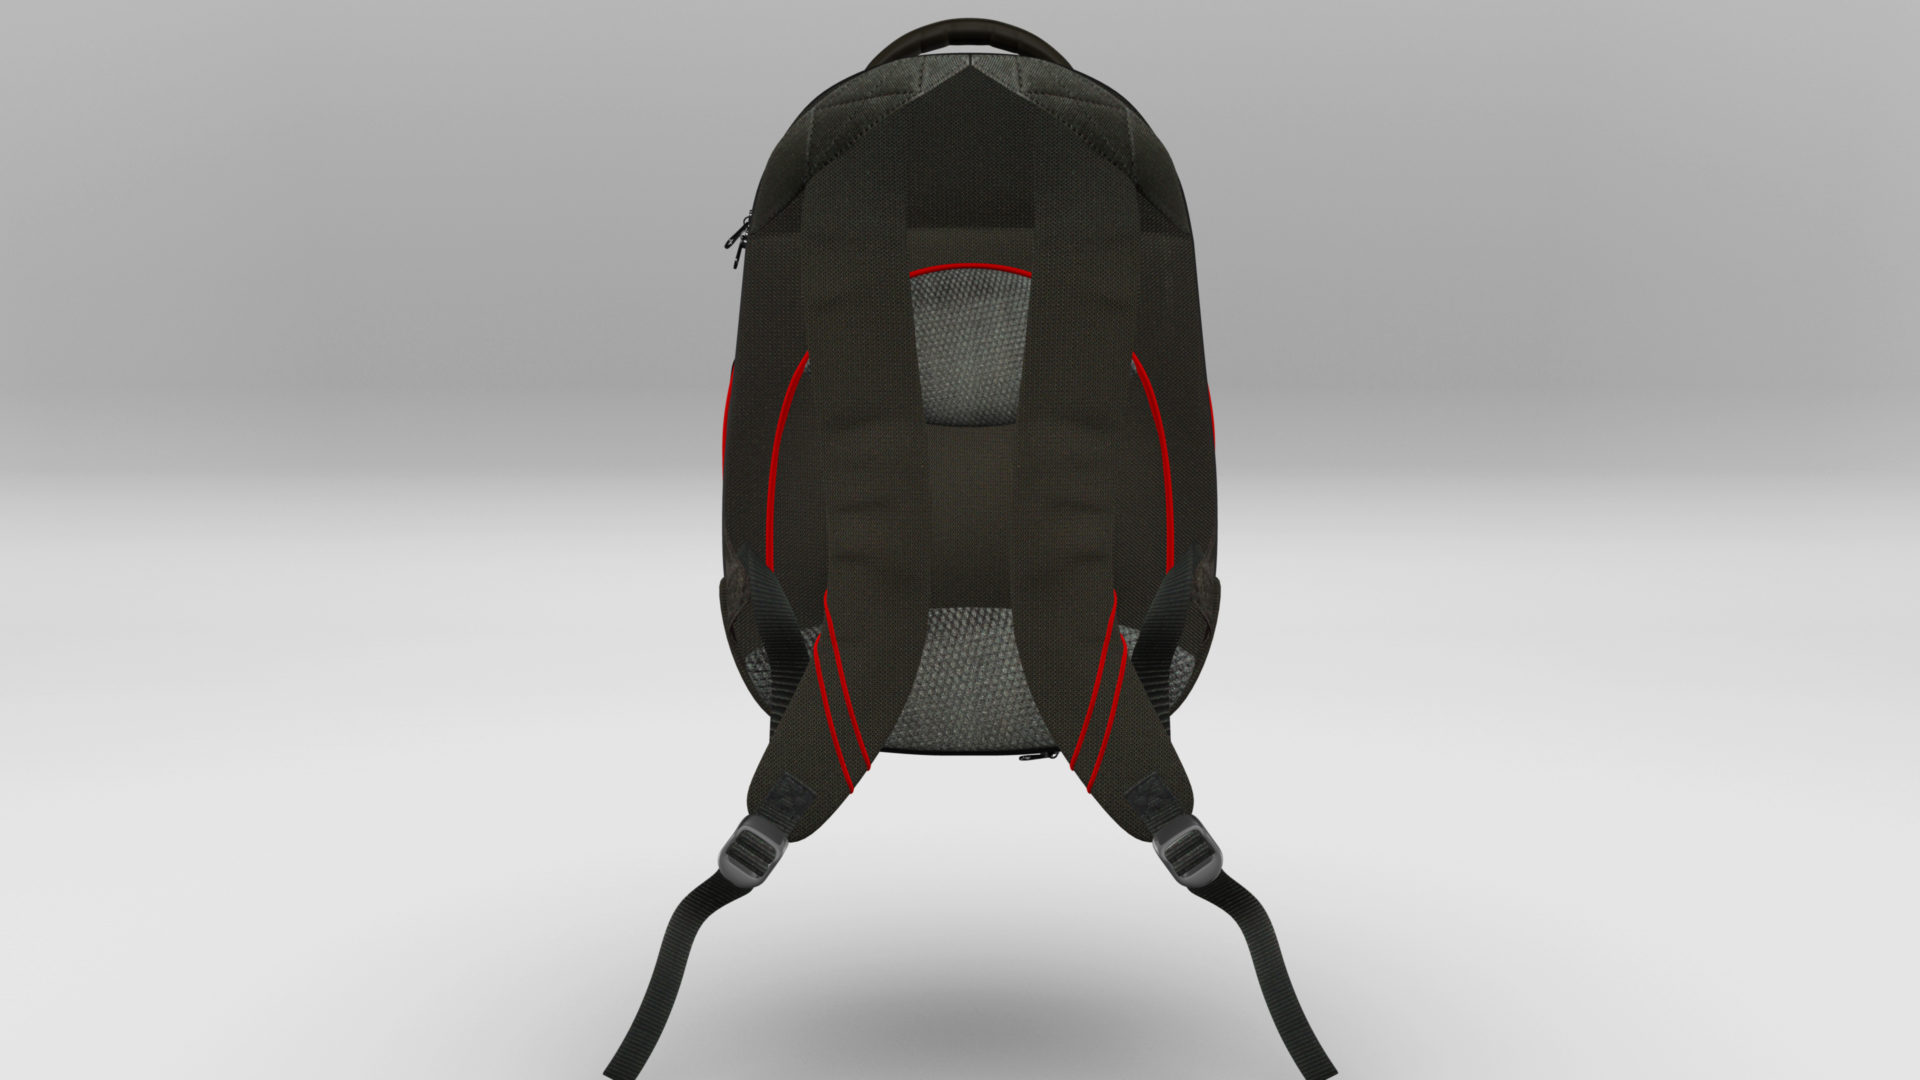 backpack 01 3d model max fbx ma mb obj 286040